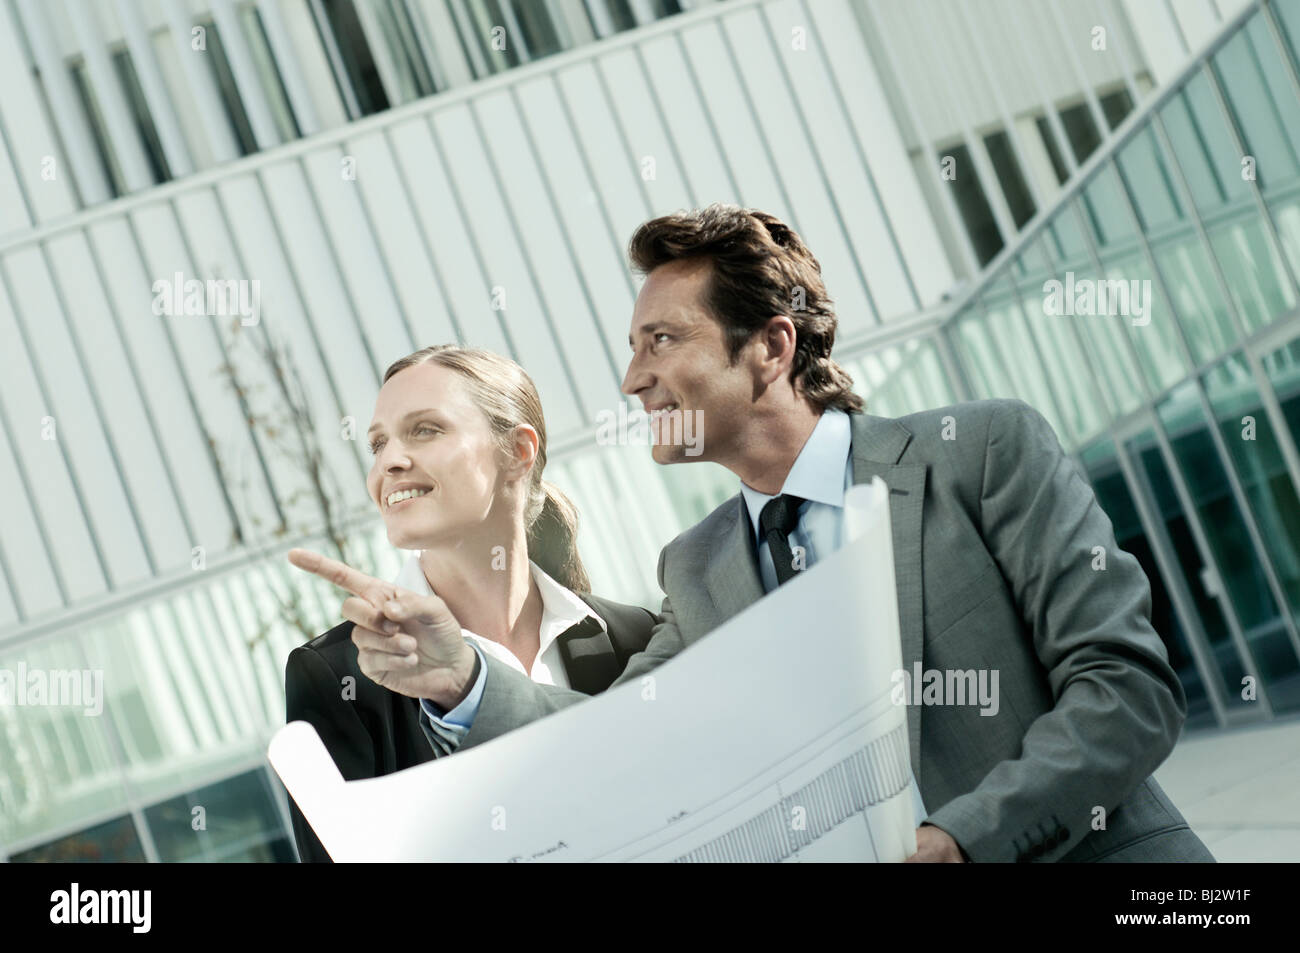 Businesspeople going over blueprints - Stock Image